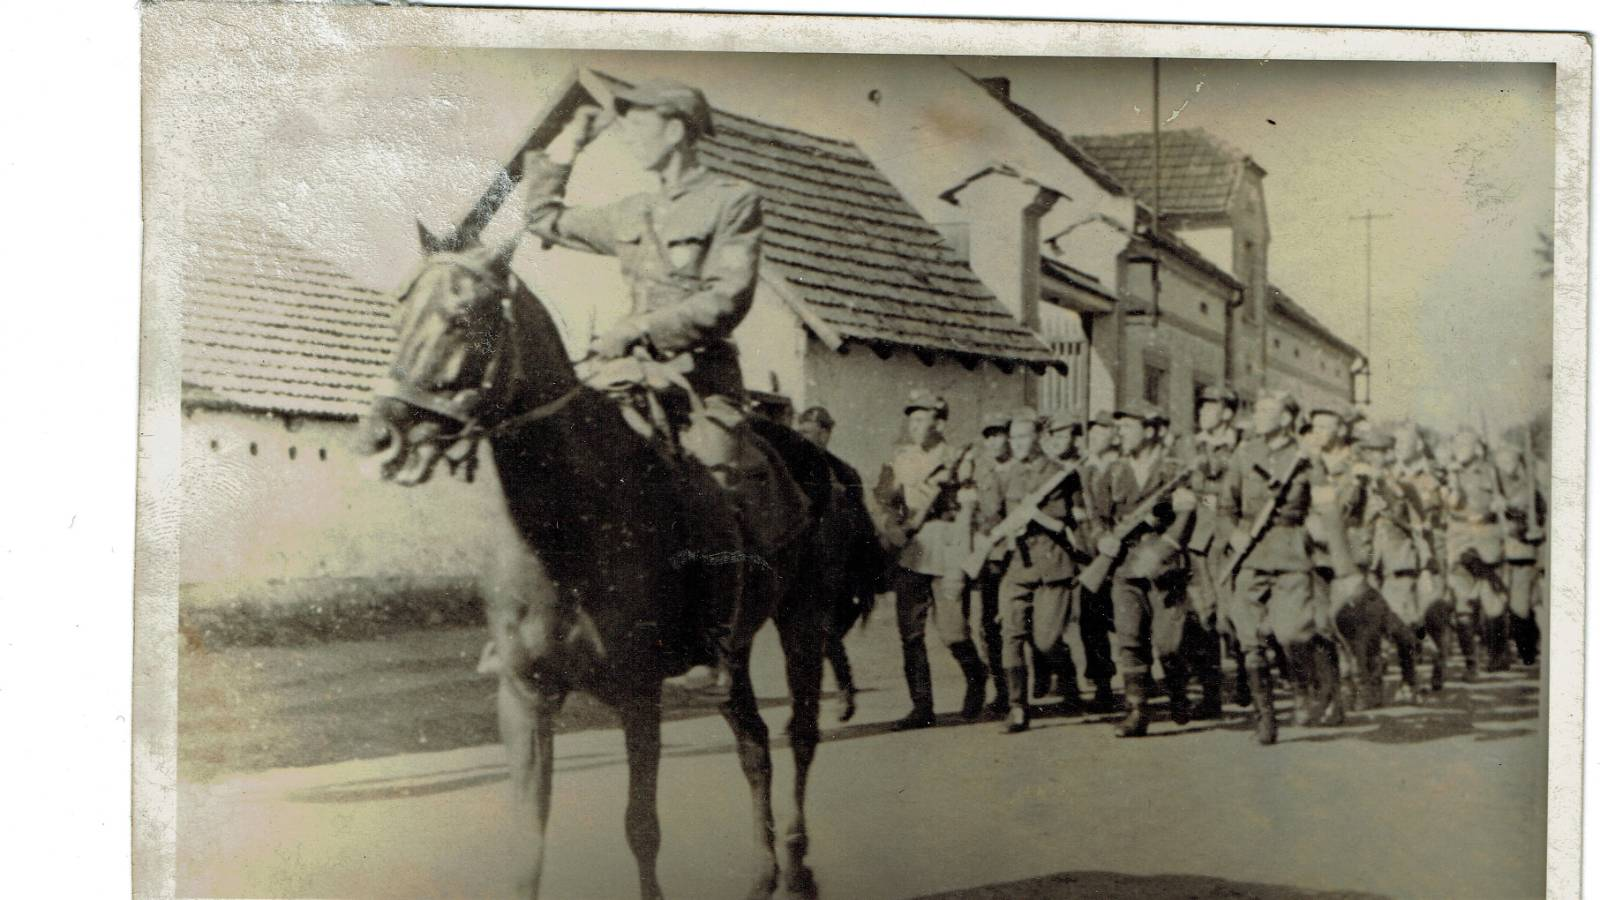 WWII Soldiers being led by soldier on horseback